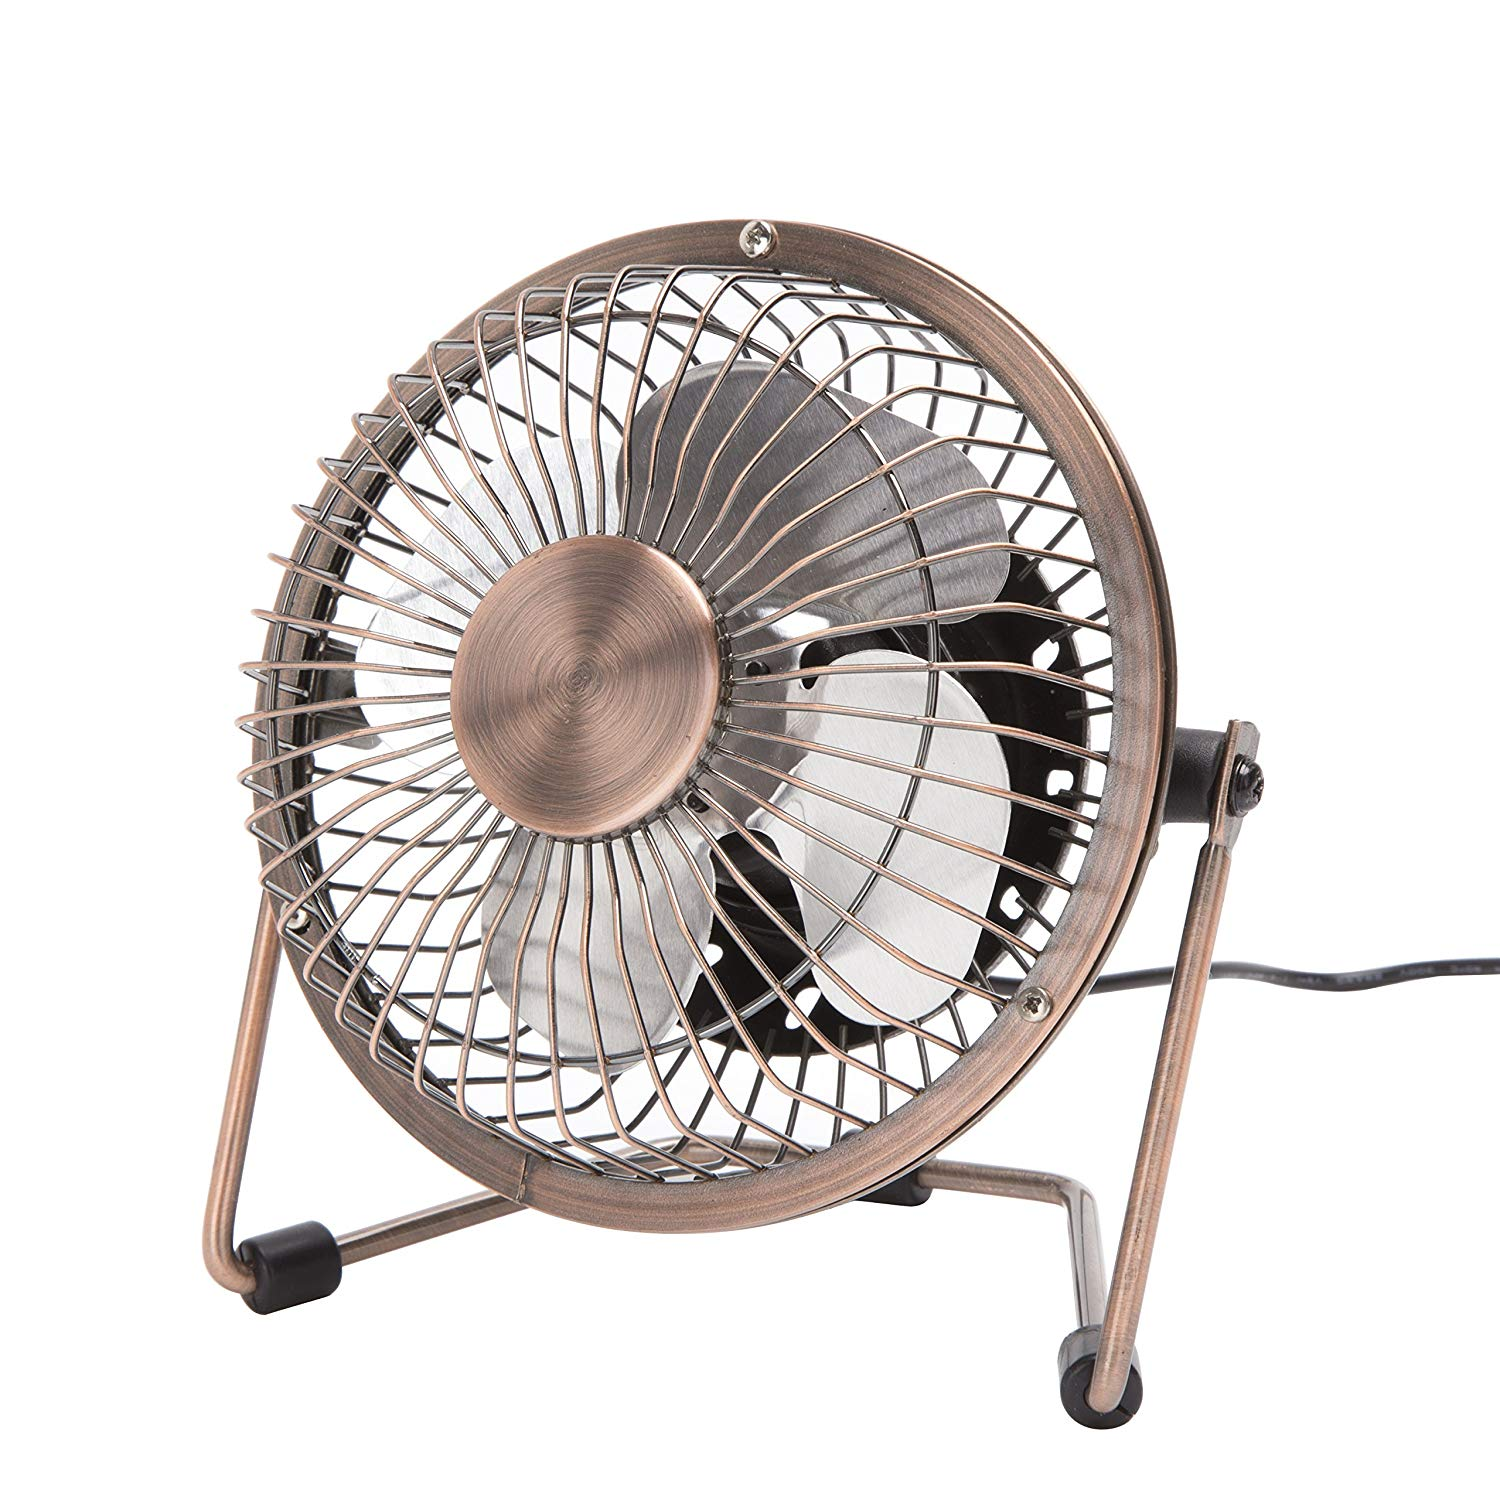 Dreamiracle Mini USB Desk Fan, Small Quiet Metal Desktop Table Personal Fan with 3.9 Feet USB Cable, Great for Office Room